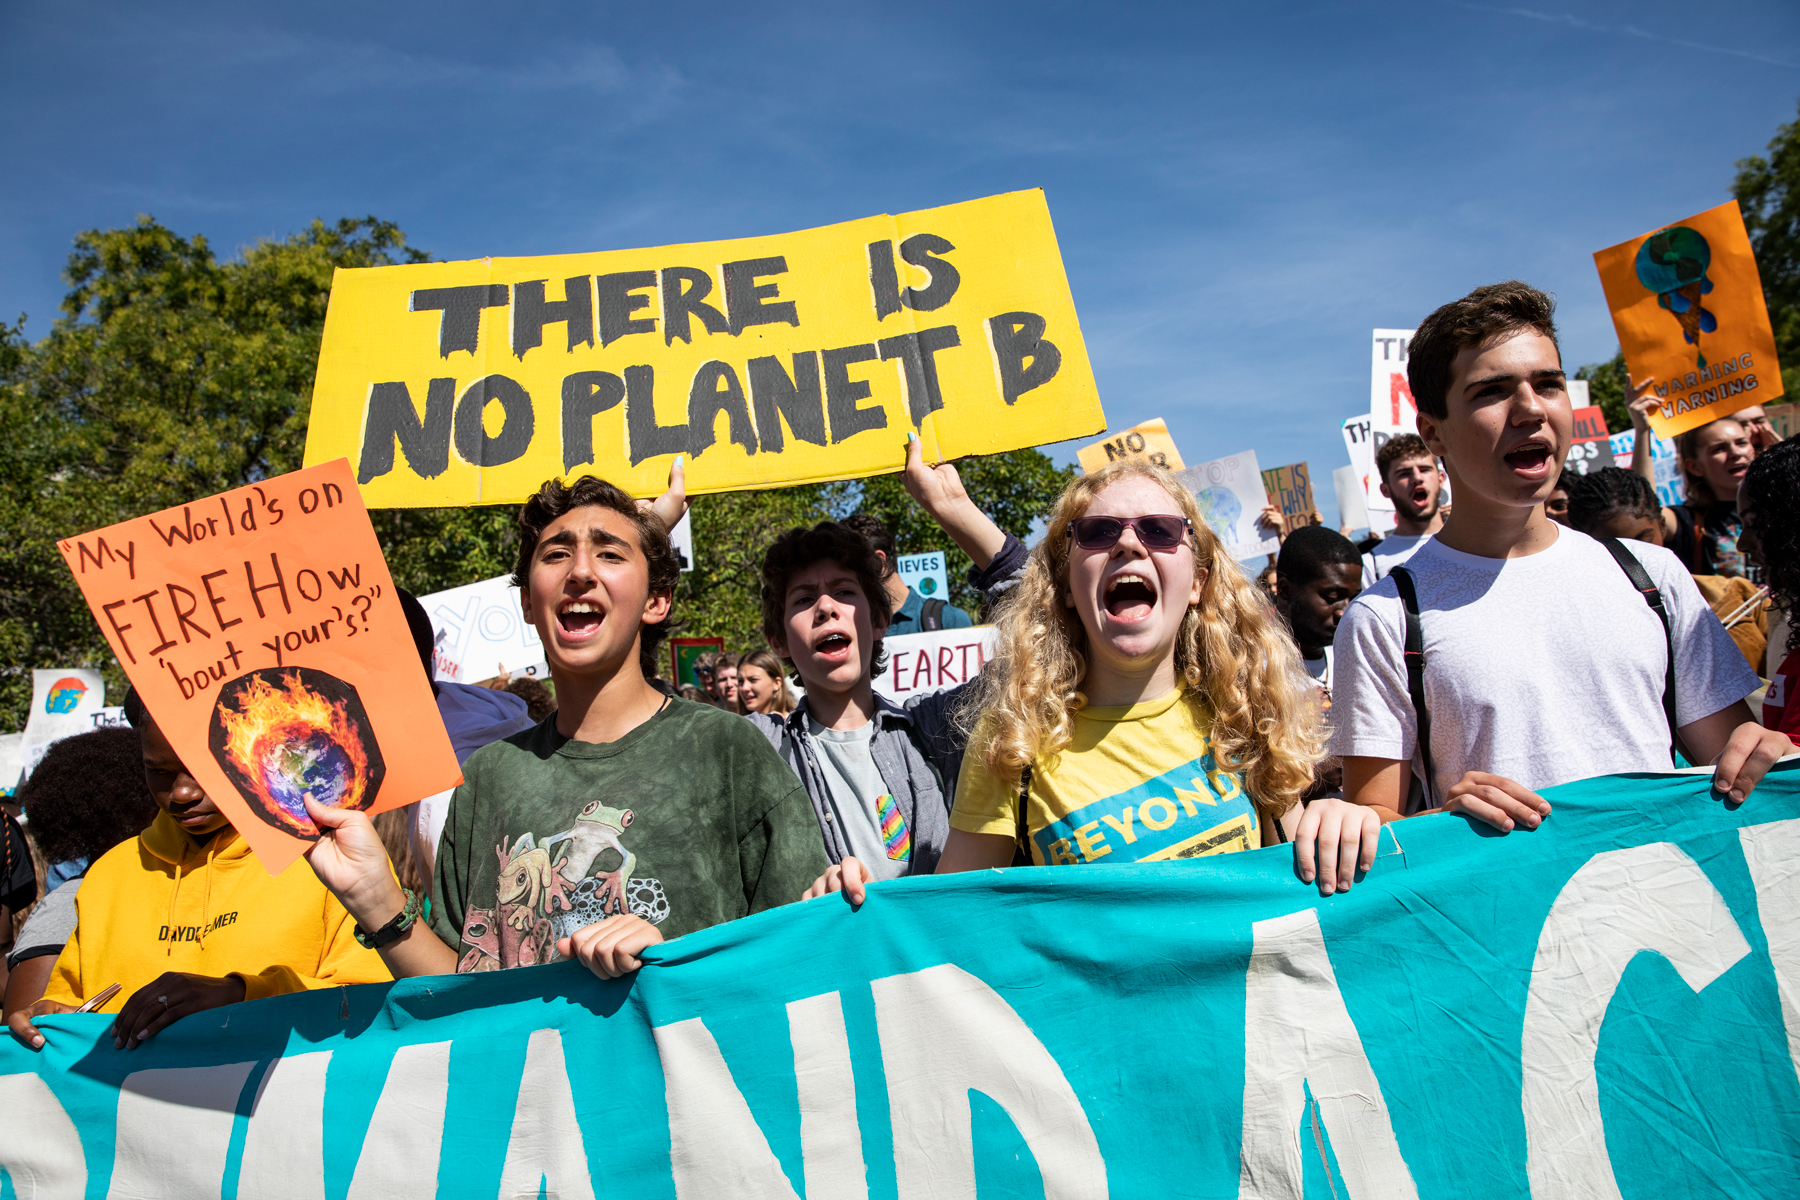 Activists gather in John Marshall Park for the Global Climate Strike protests on September 20, 2019 in Washington, United States.